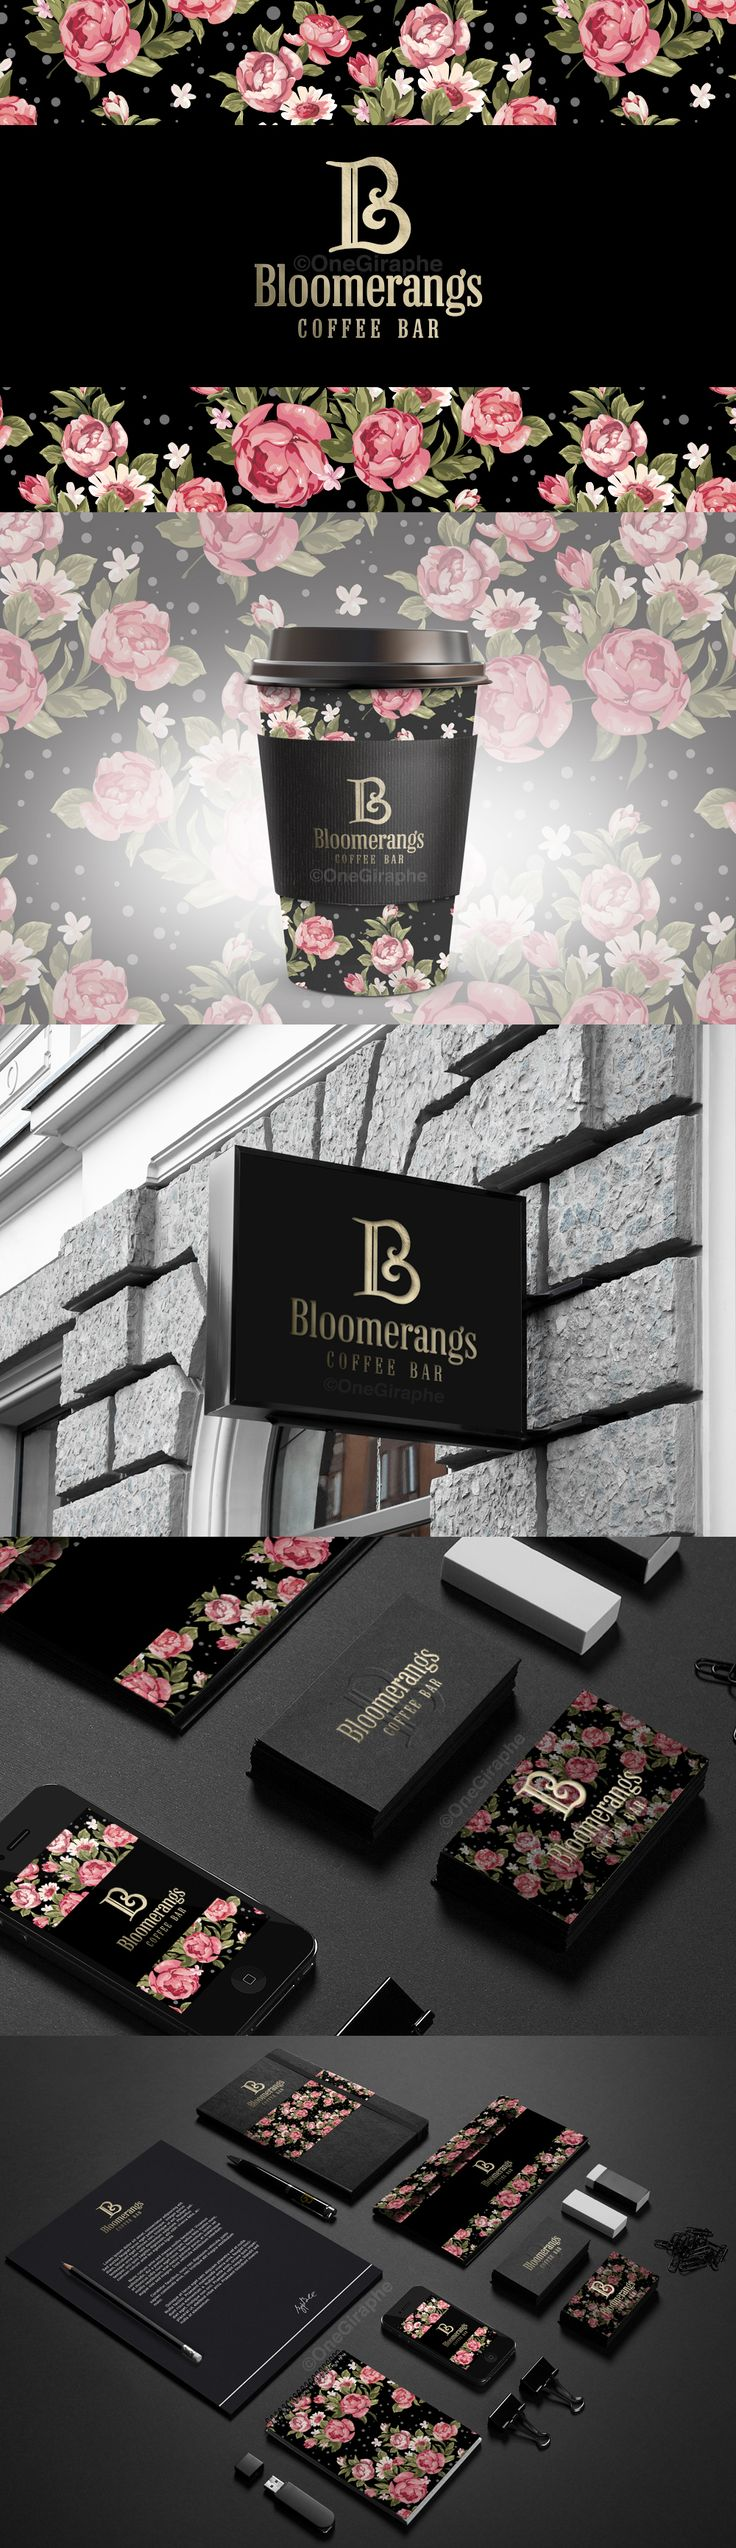 Bloomerangs, Coffee Bar, Brand ID